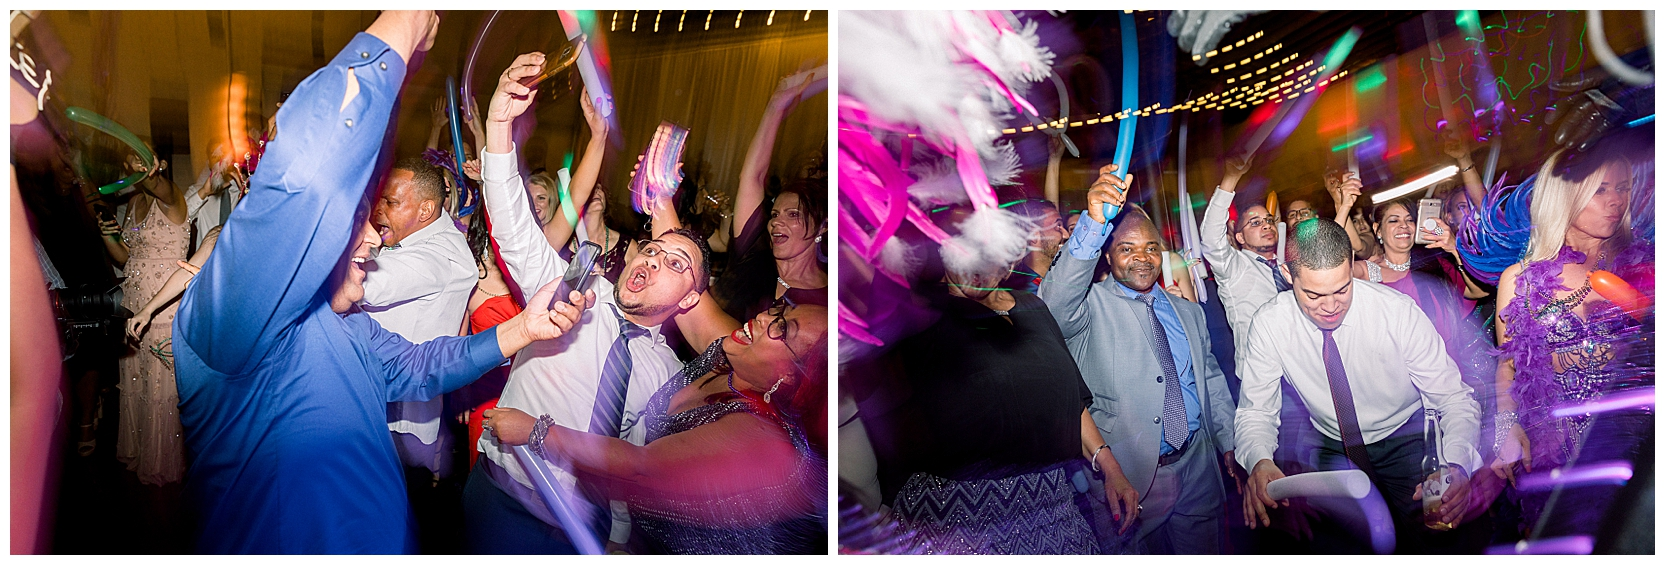 jessicafredericks_lakeland_tampa_wedding_purple_crazy hour_0092.jpg